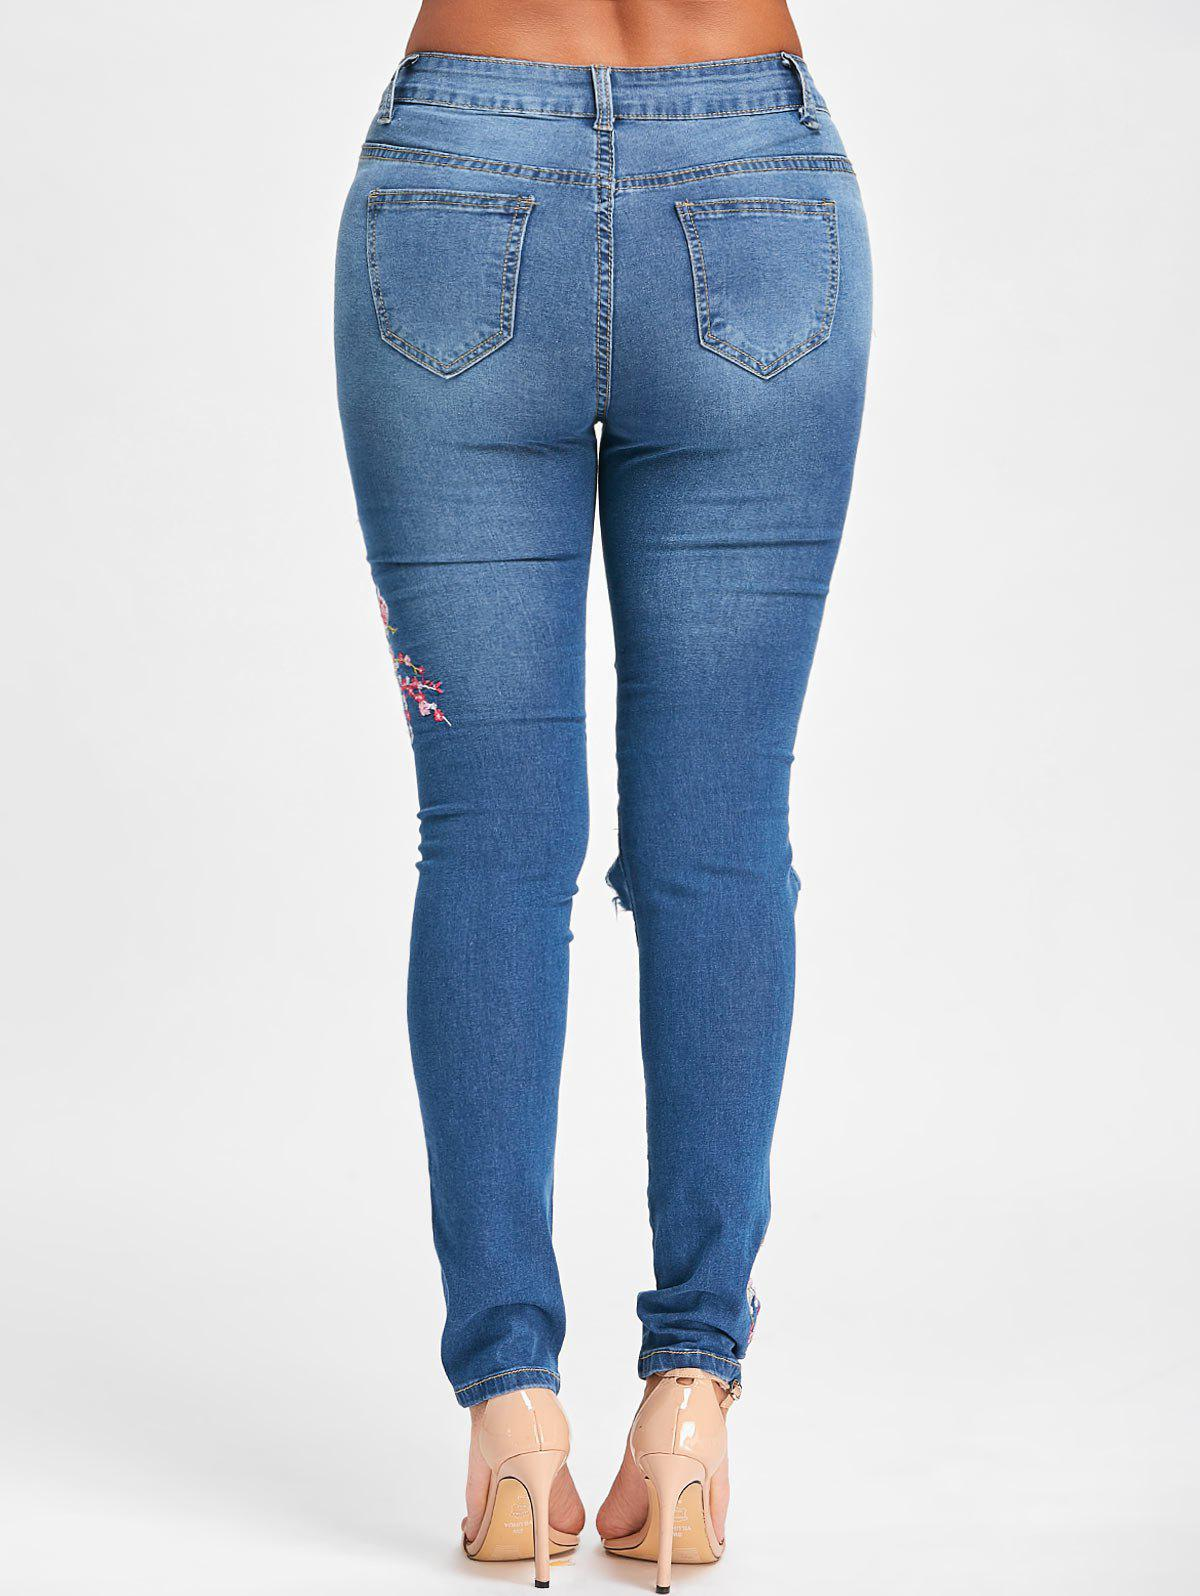 Floral Embroidery Ripped Denim Jeans - BLUE M